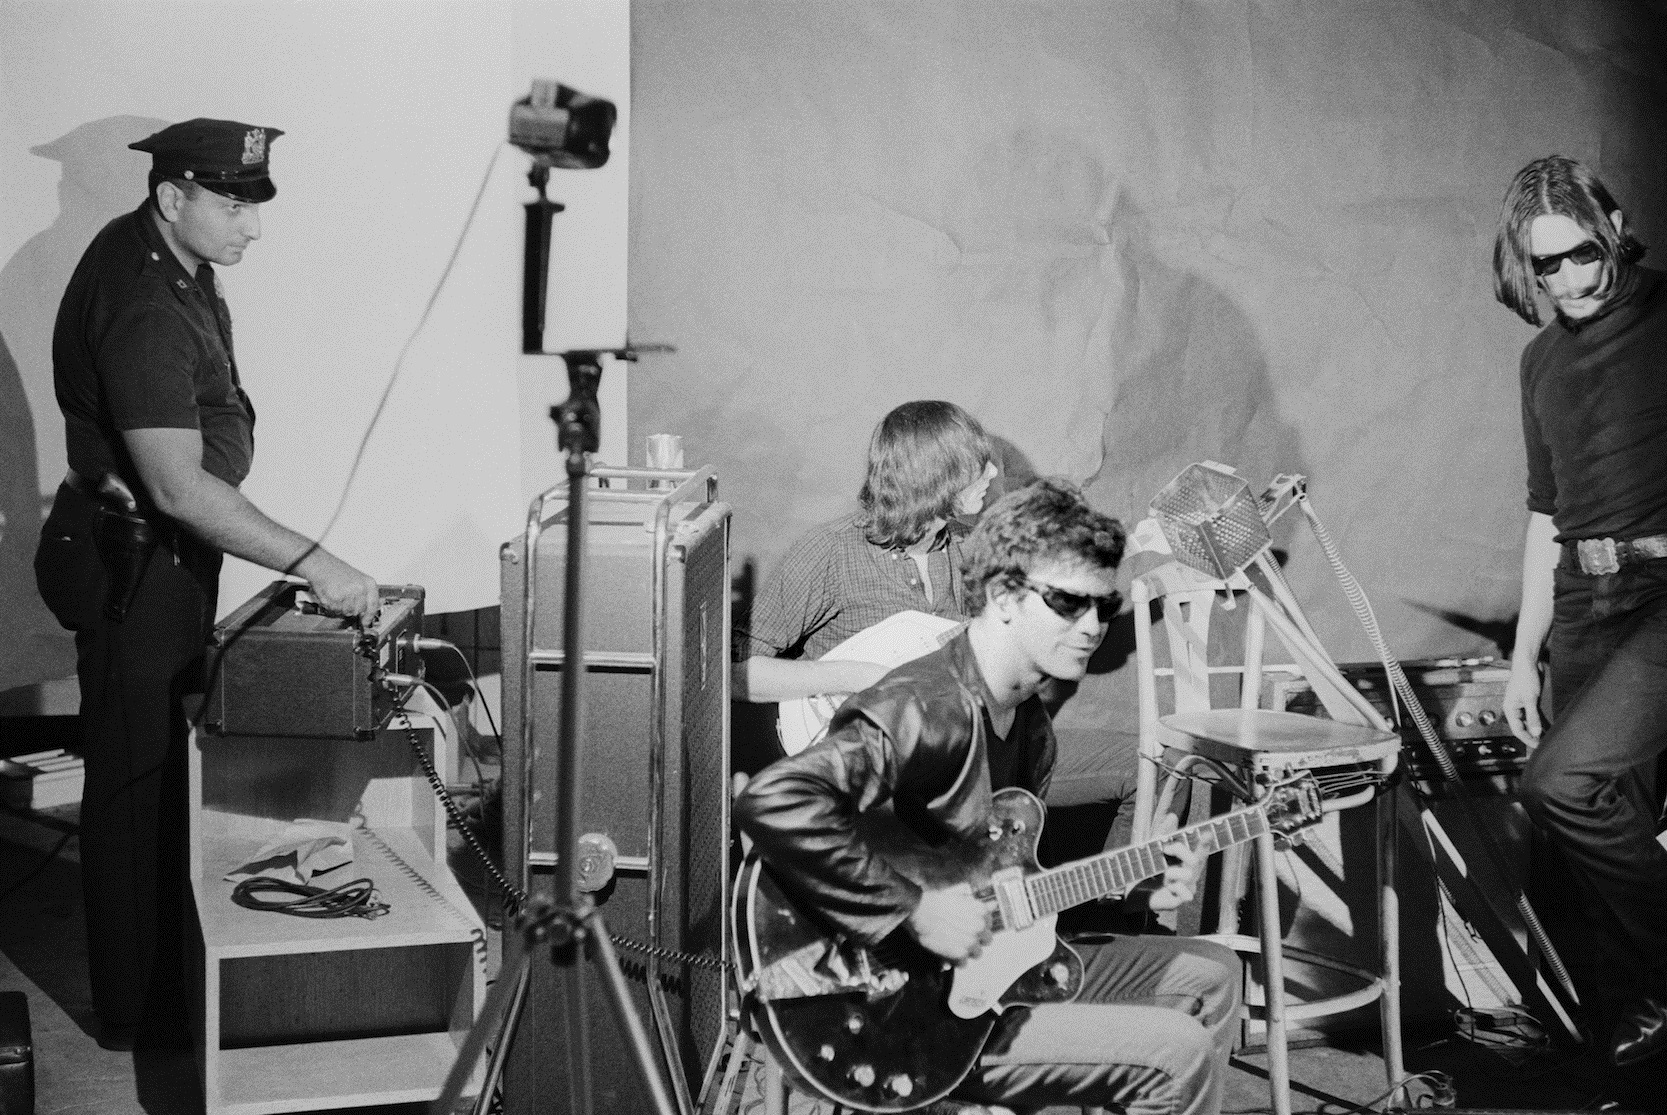 velvet underground band studio photo